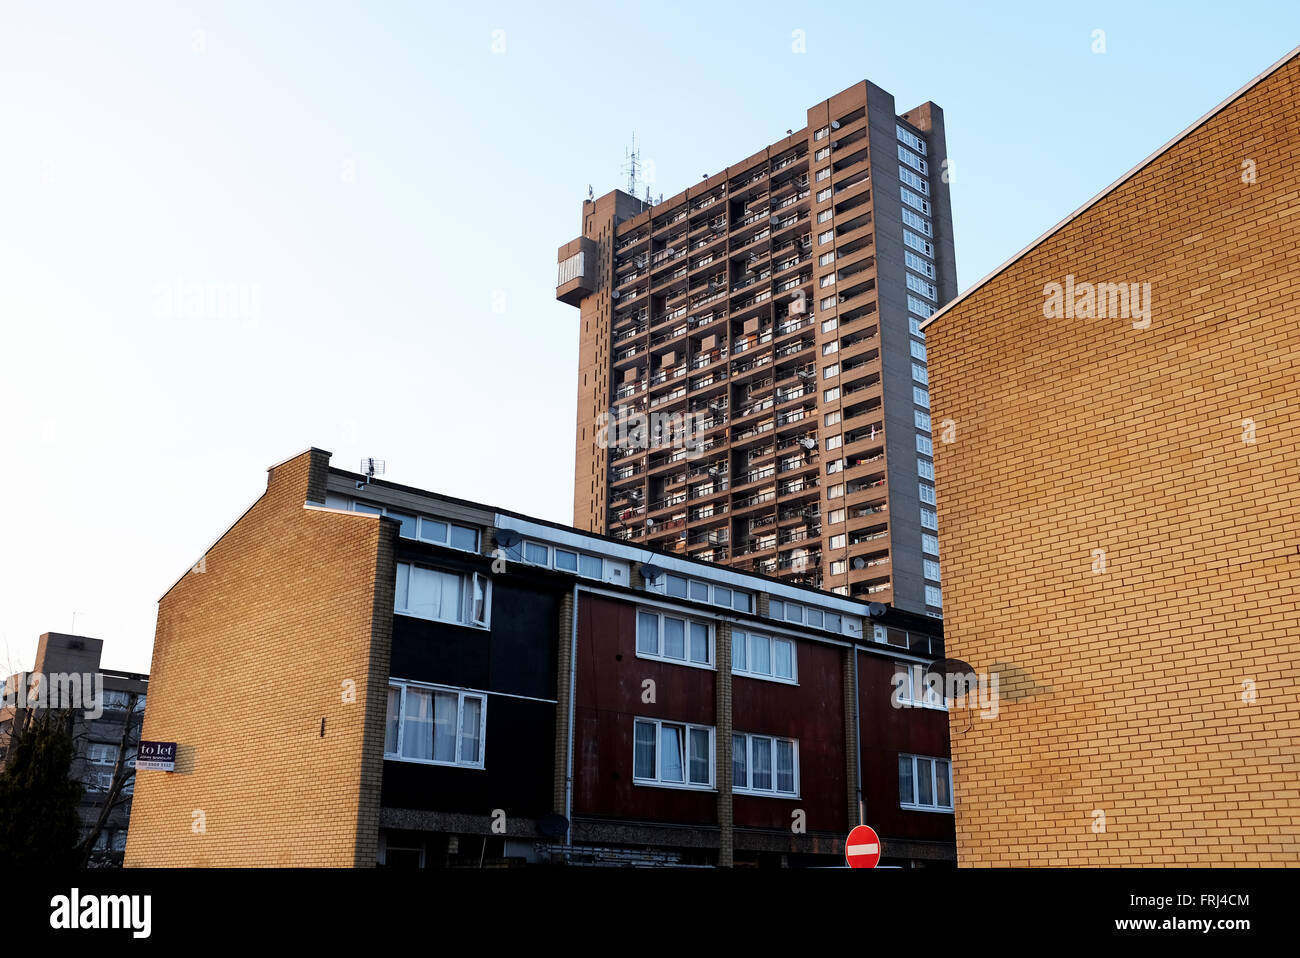 High rise council flats in Westbourne Green and Ladbroke Grove area of London UK Stock Photo